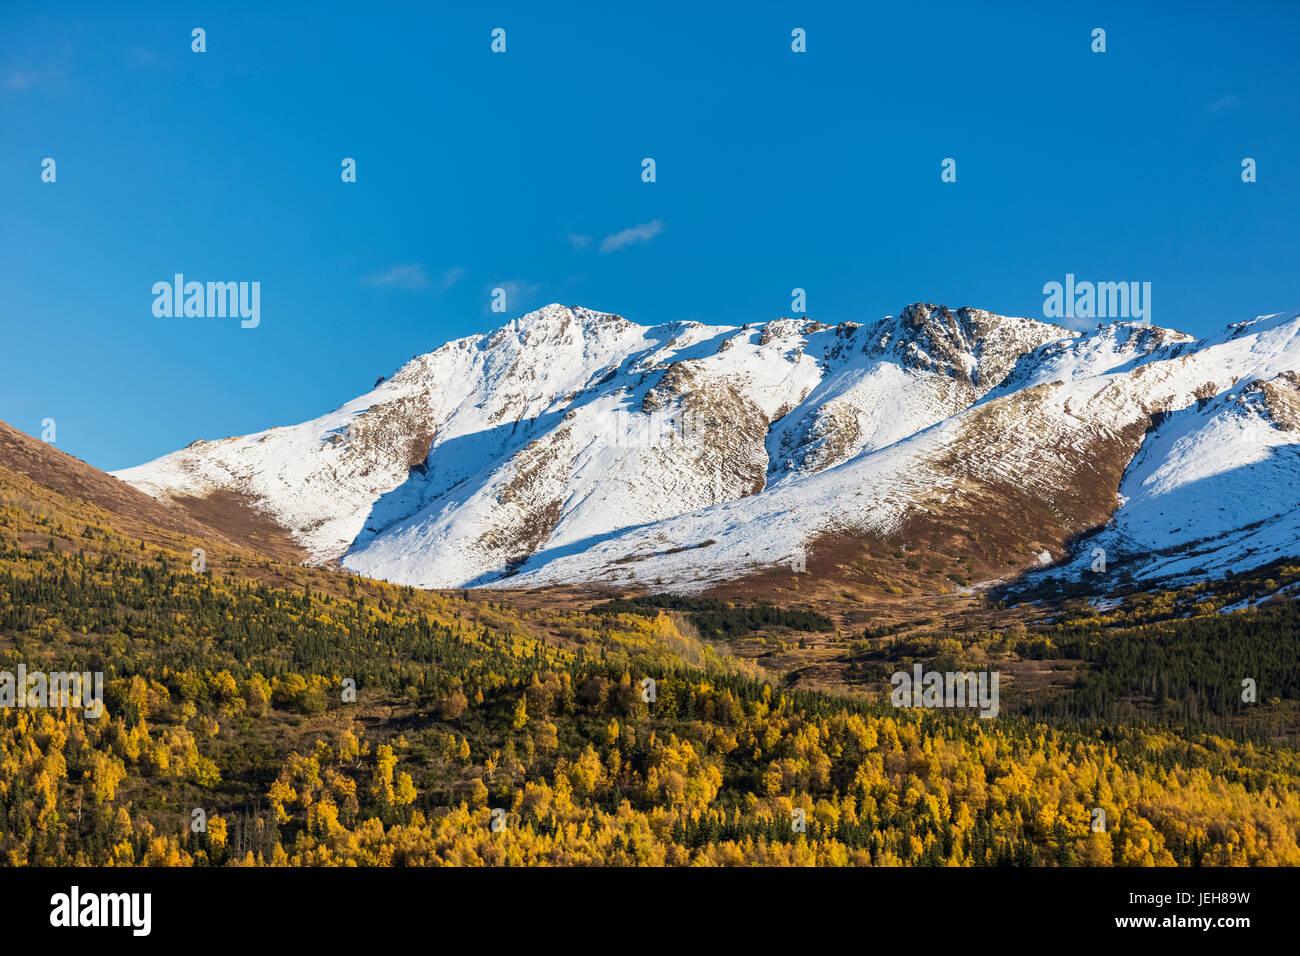 Eagle River Valley, autumn coloured trees filling the valley, snow covering the Chugach Mountains in the background, - Stock Image